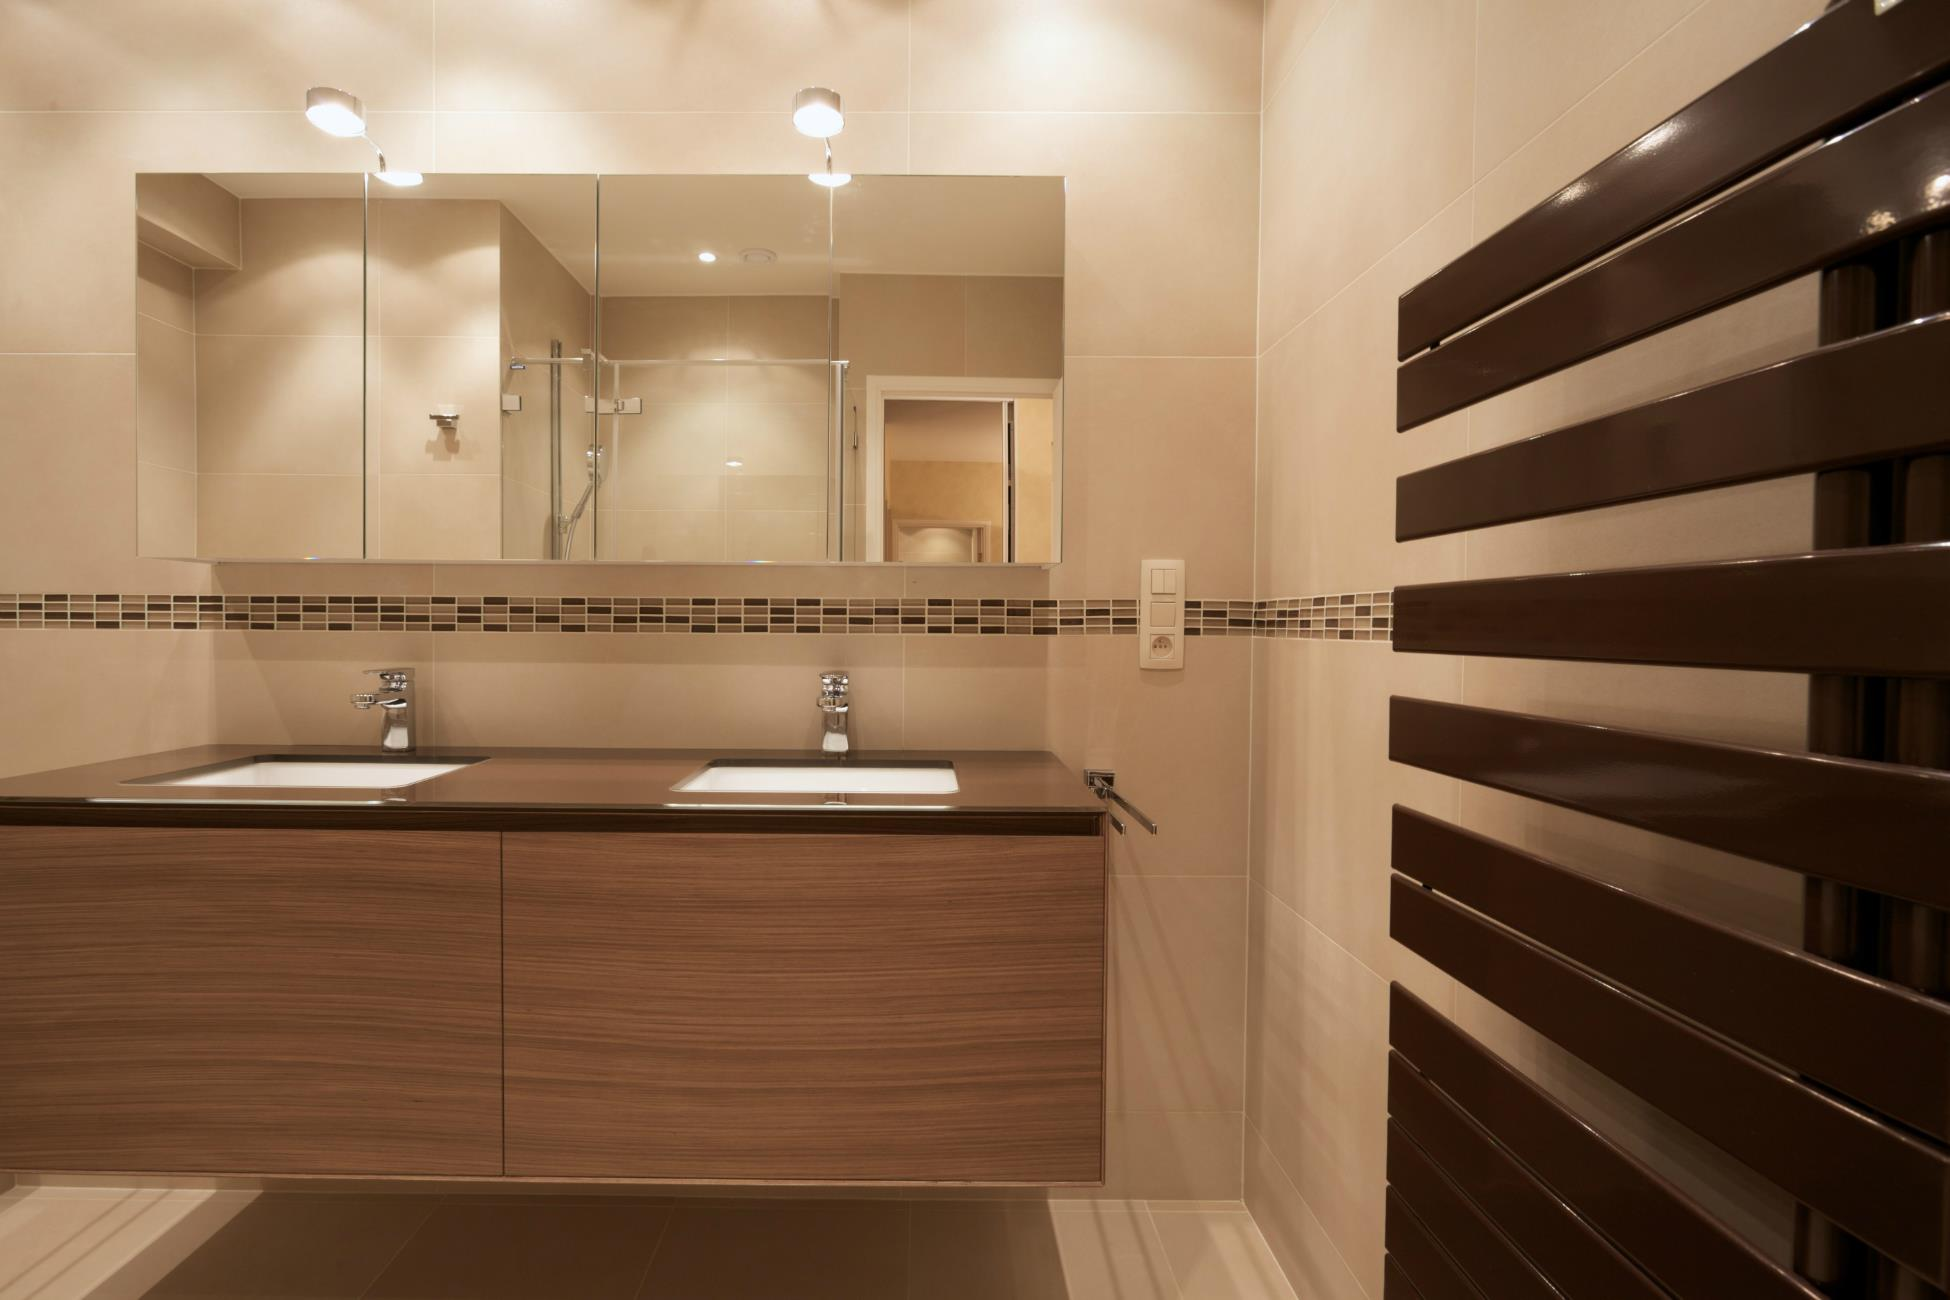 Salle de bain design r alisations renov management for Salle de bain architecte